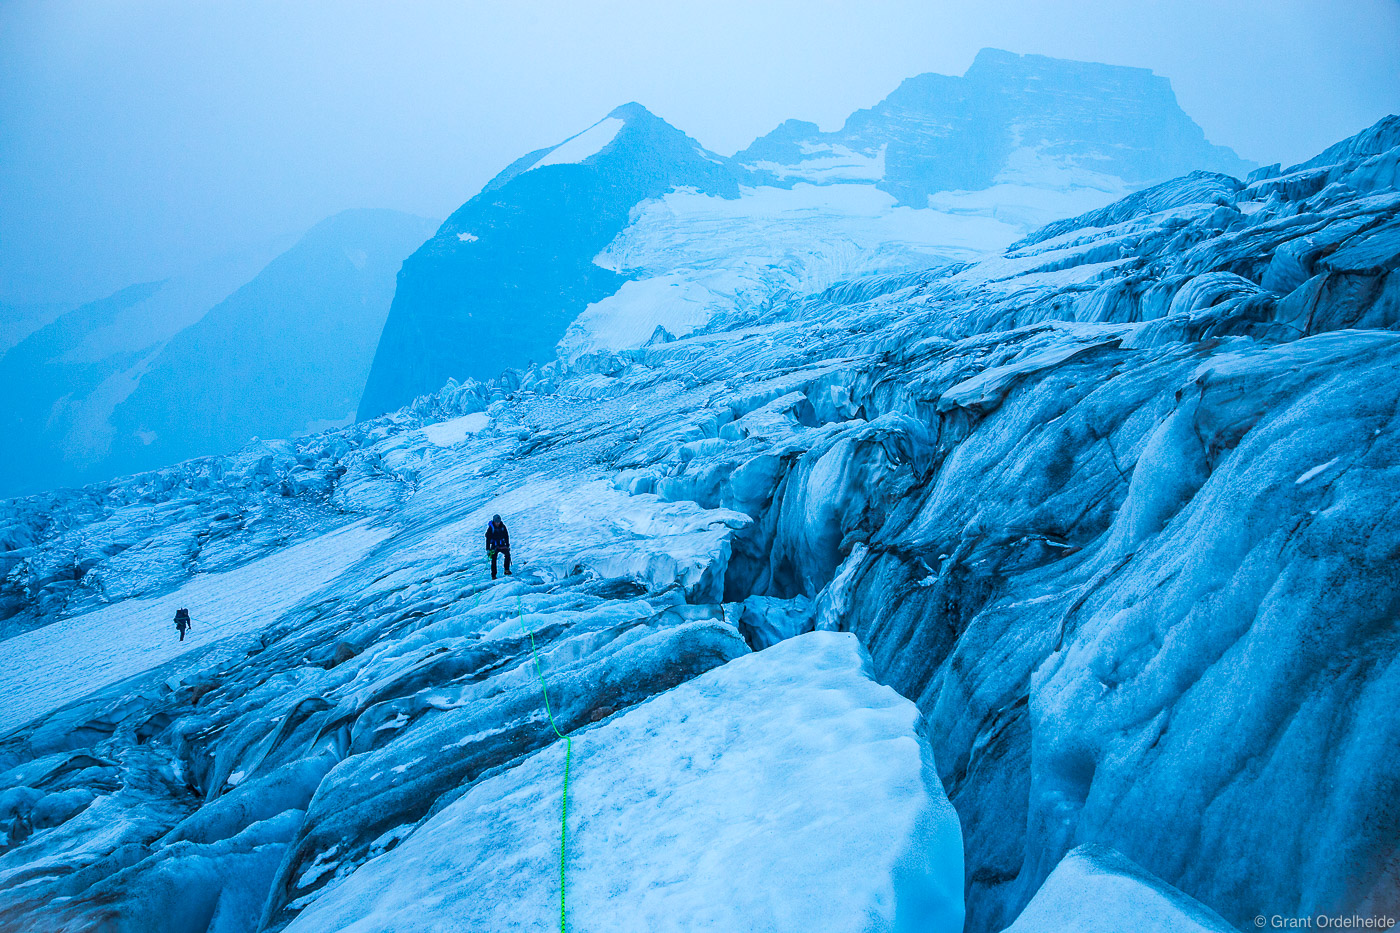 glacier, navigation, bugaboo, provincial, park, british, columbia, canada, two, climbers, navigating, crevasses, climb, , photo